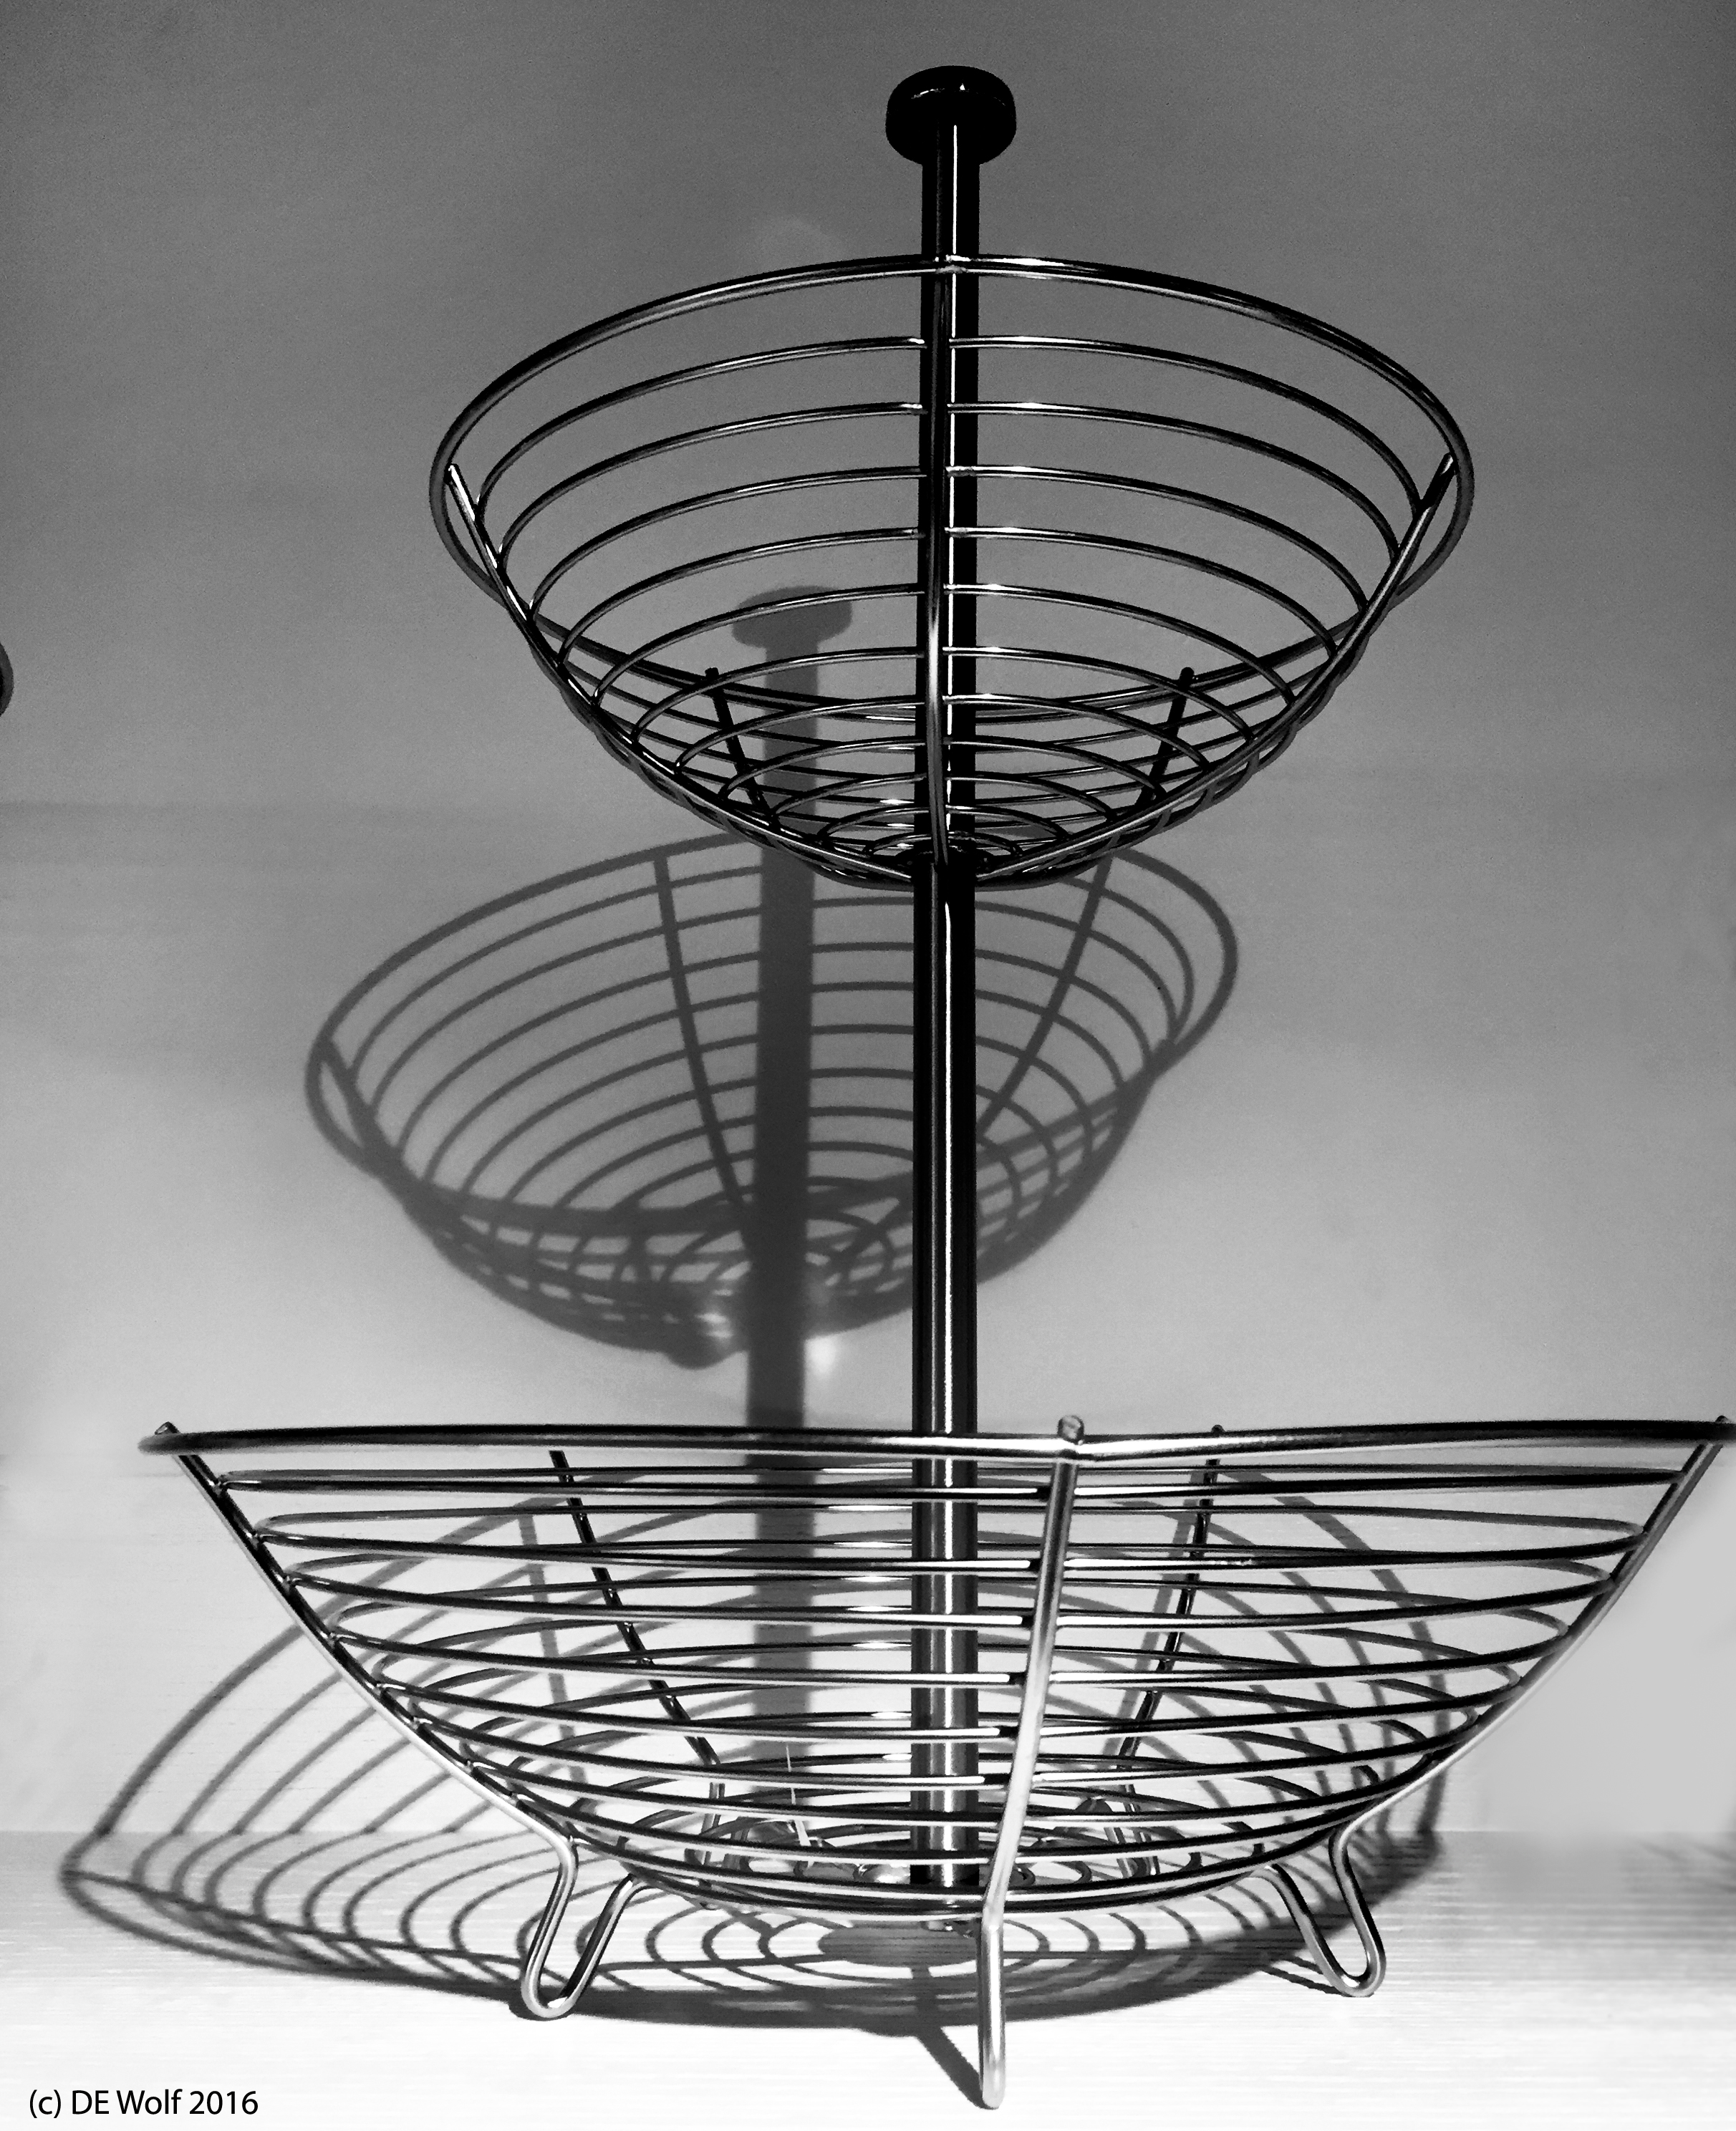 Figure 1 - The stainless steel basket, (c) DE Wolf 2016.